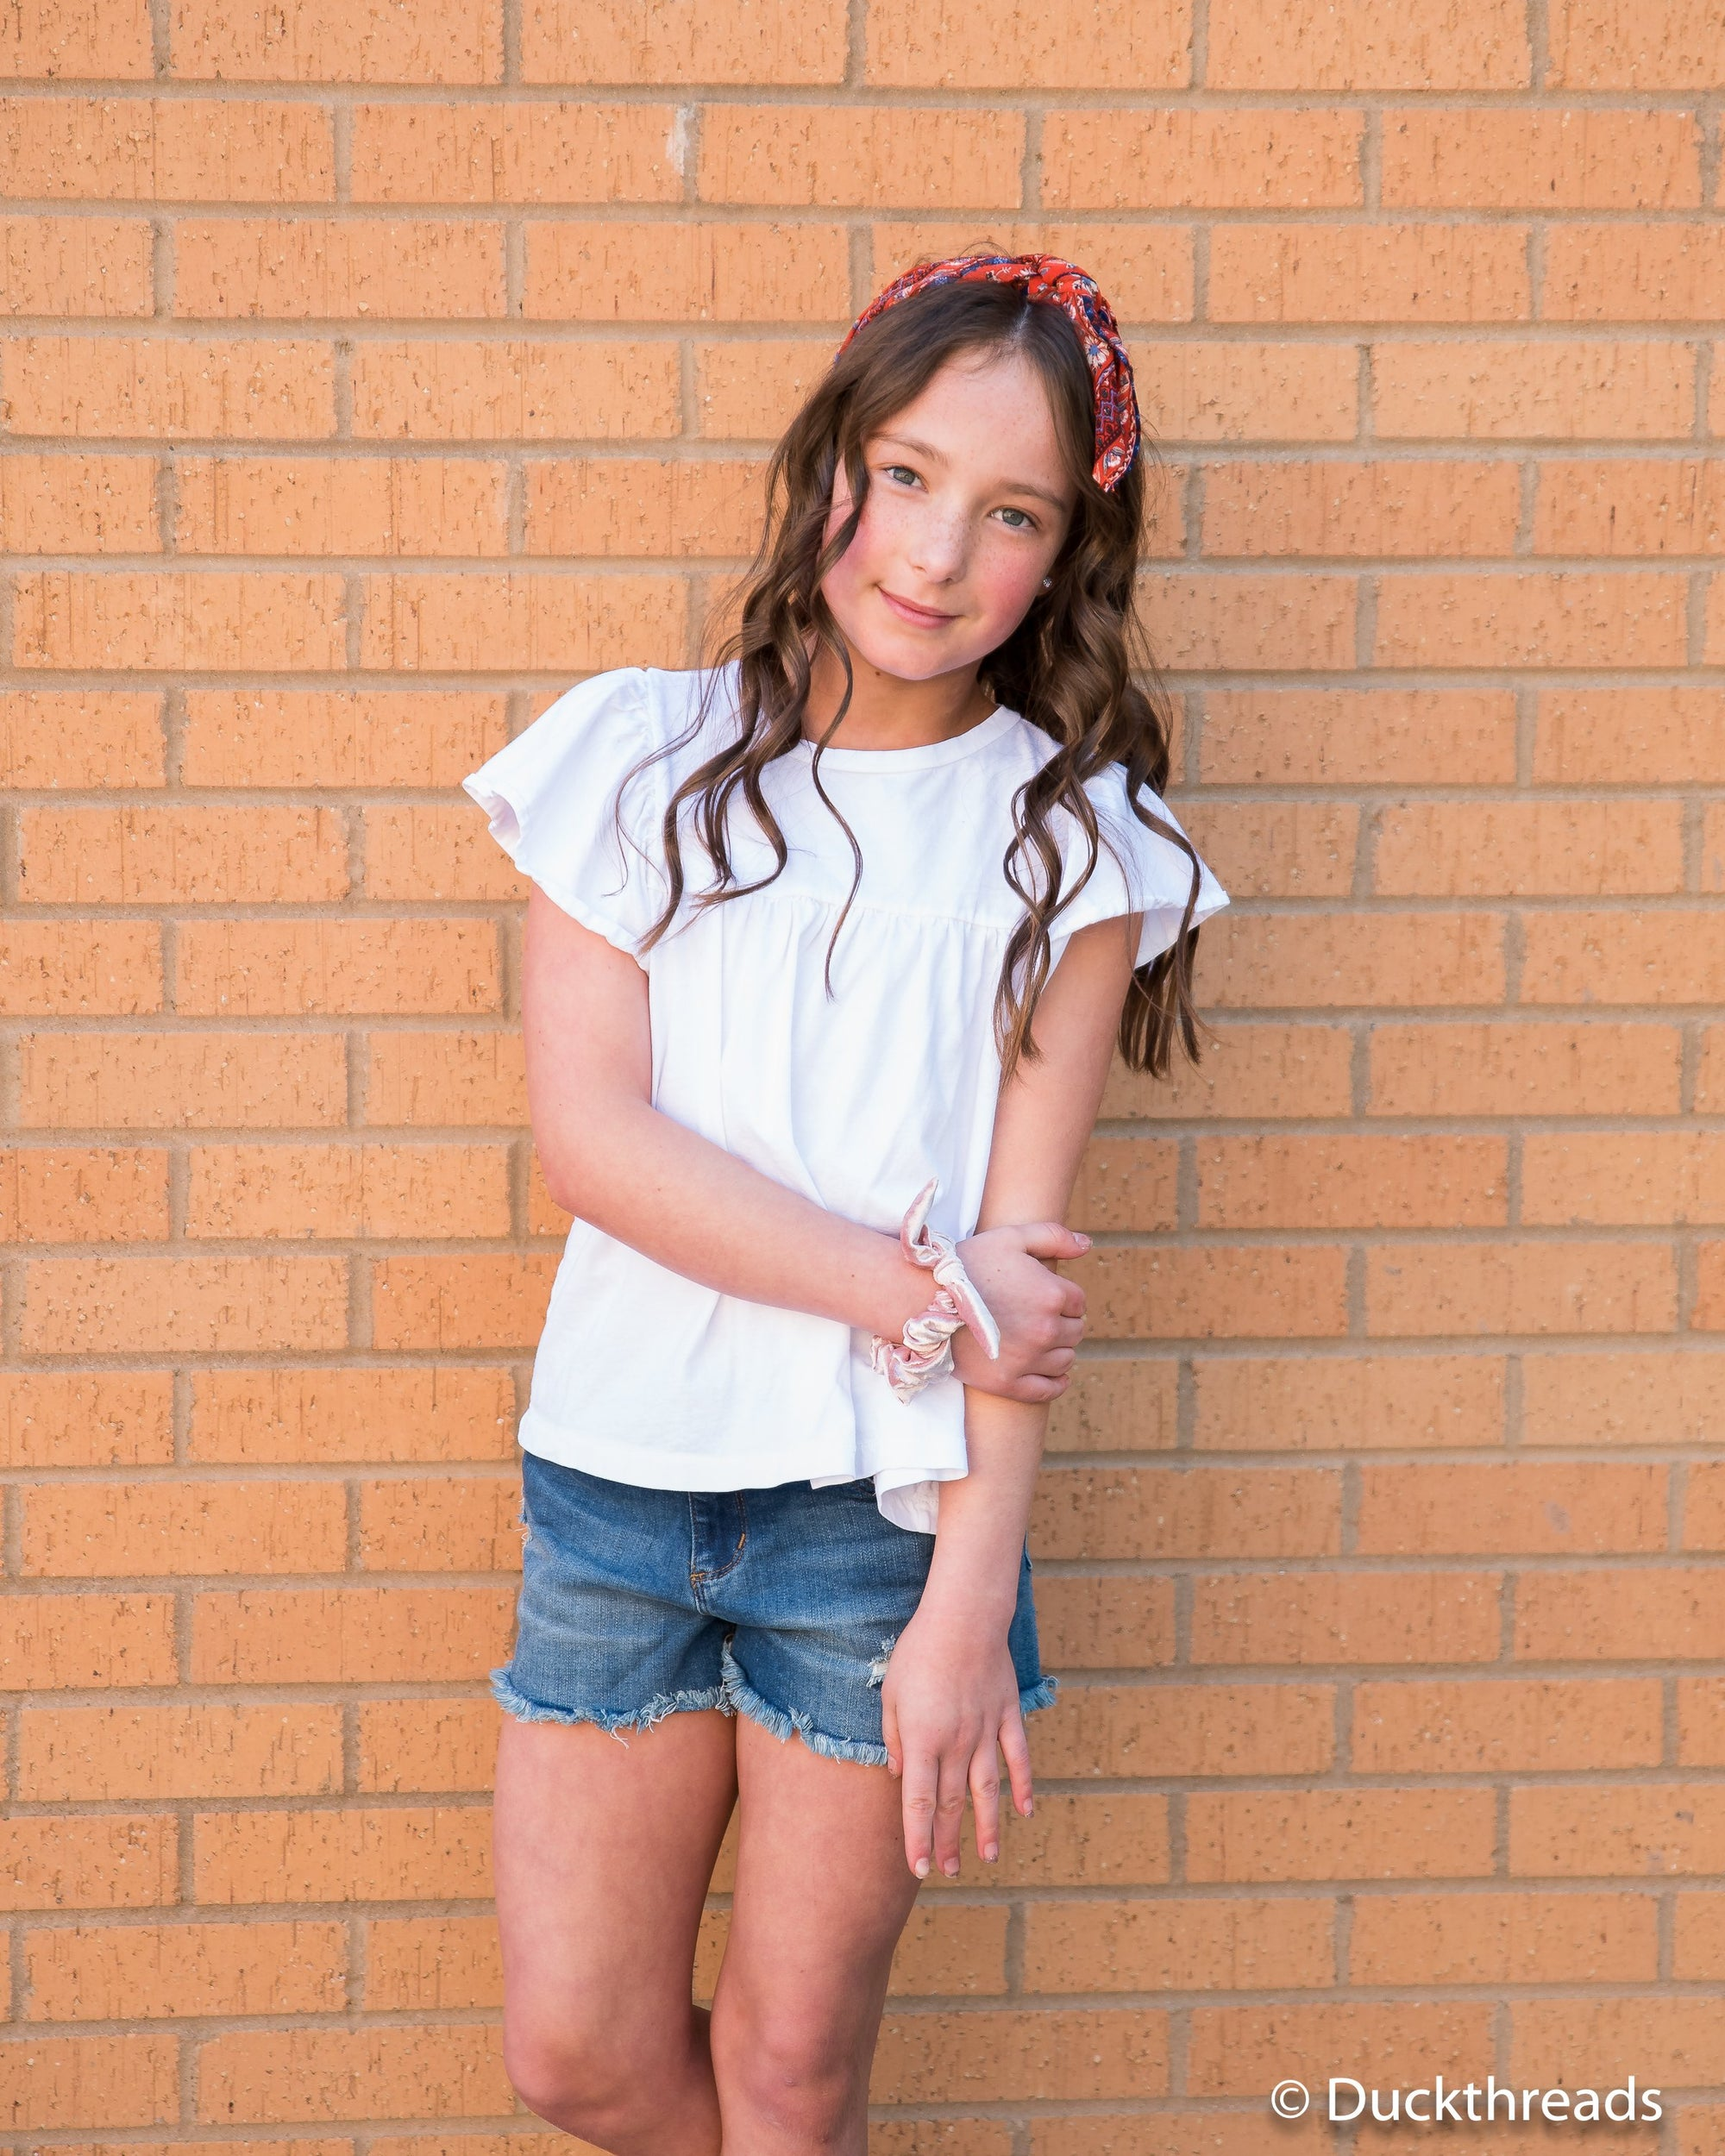 Tractr Dark Distressed Denim Shorts for Girls Duckthreads